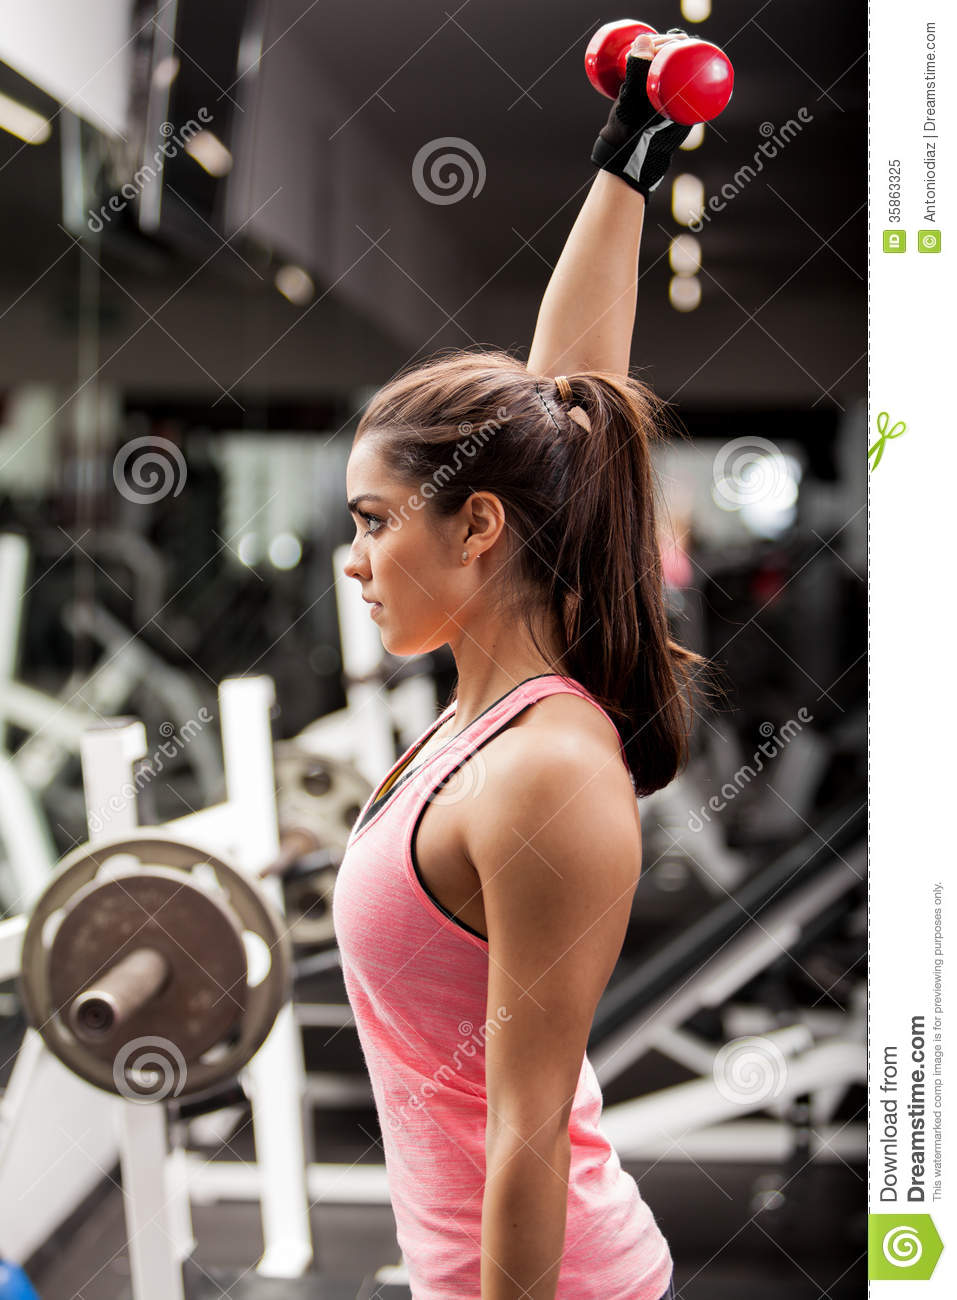 Pretty Girl Lifting Weights Royalty Free Stock Photo ...